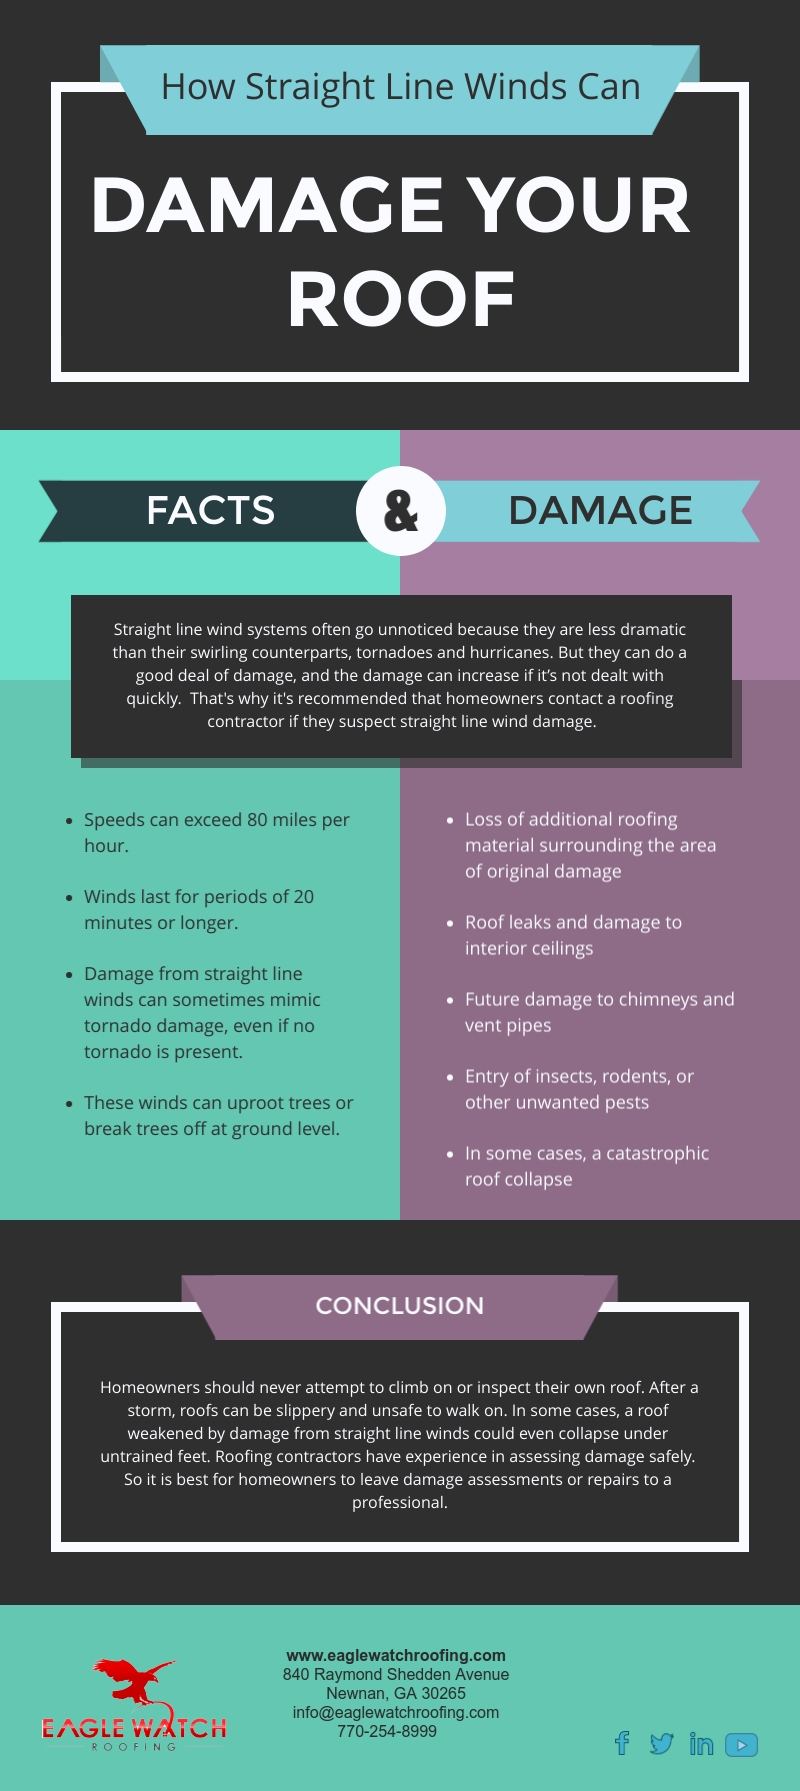 How Straight Line Winds Can Damage Your Roof [infographic]